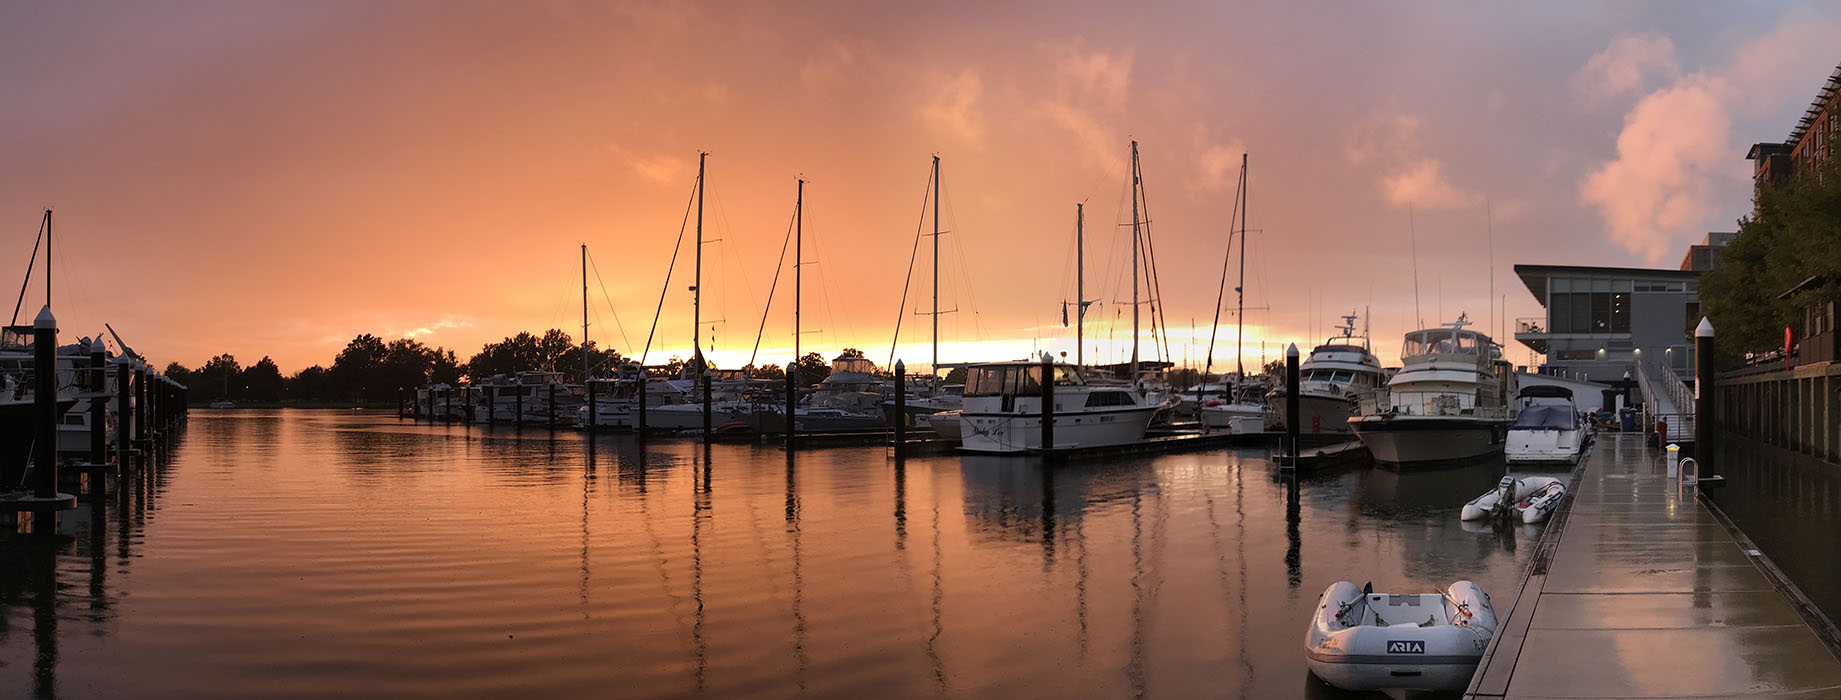 Panorama Red Sunset behind moored boats at yacht basin.